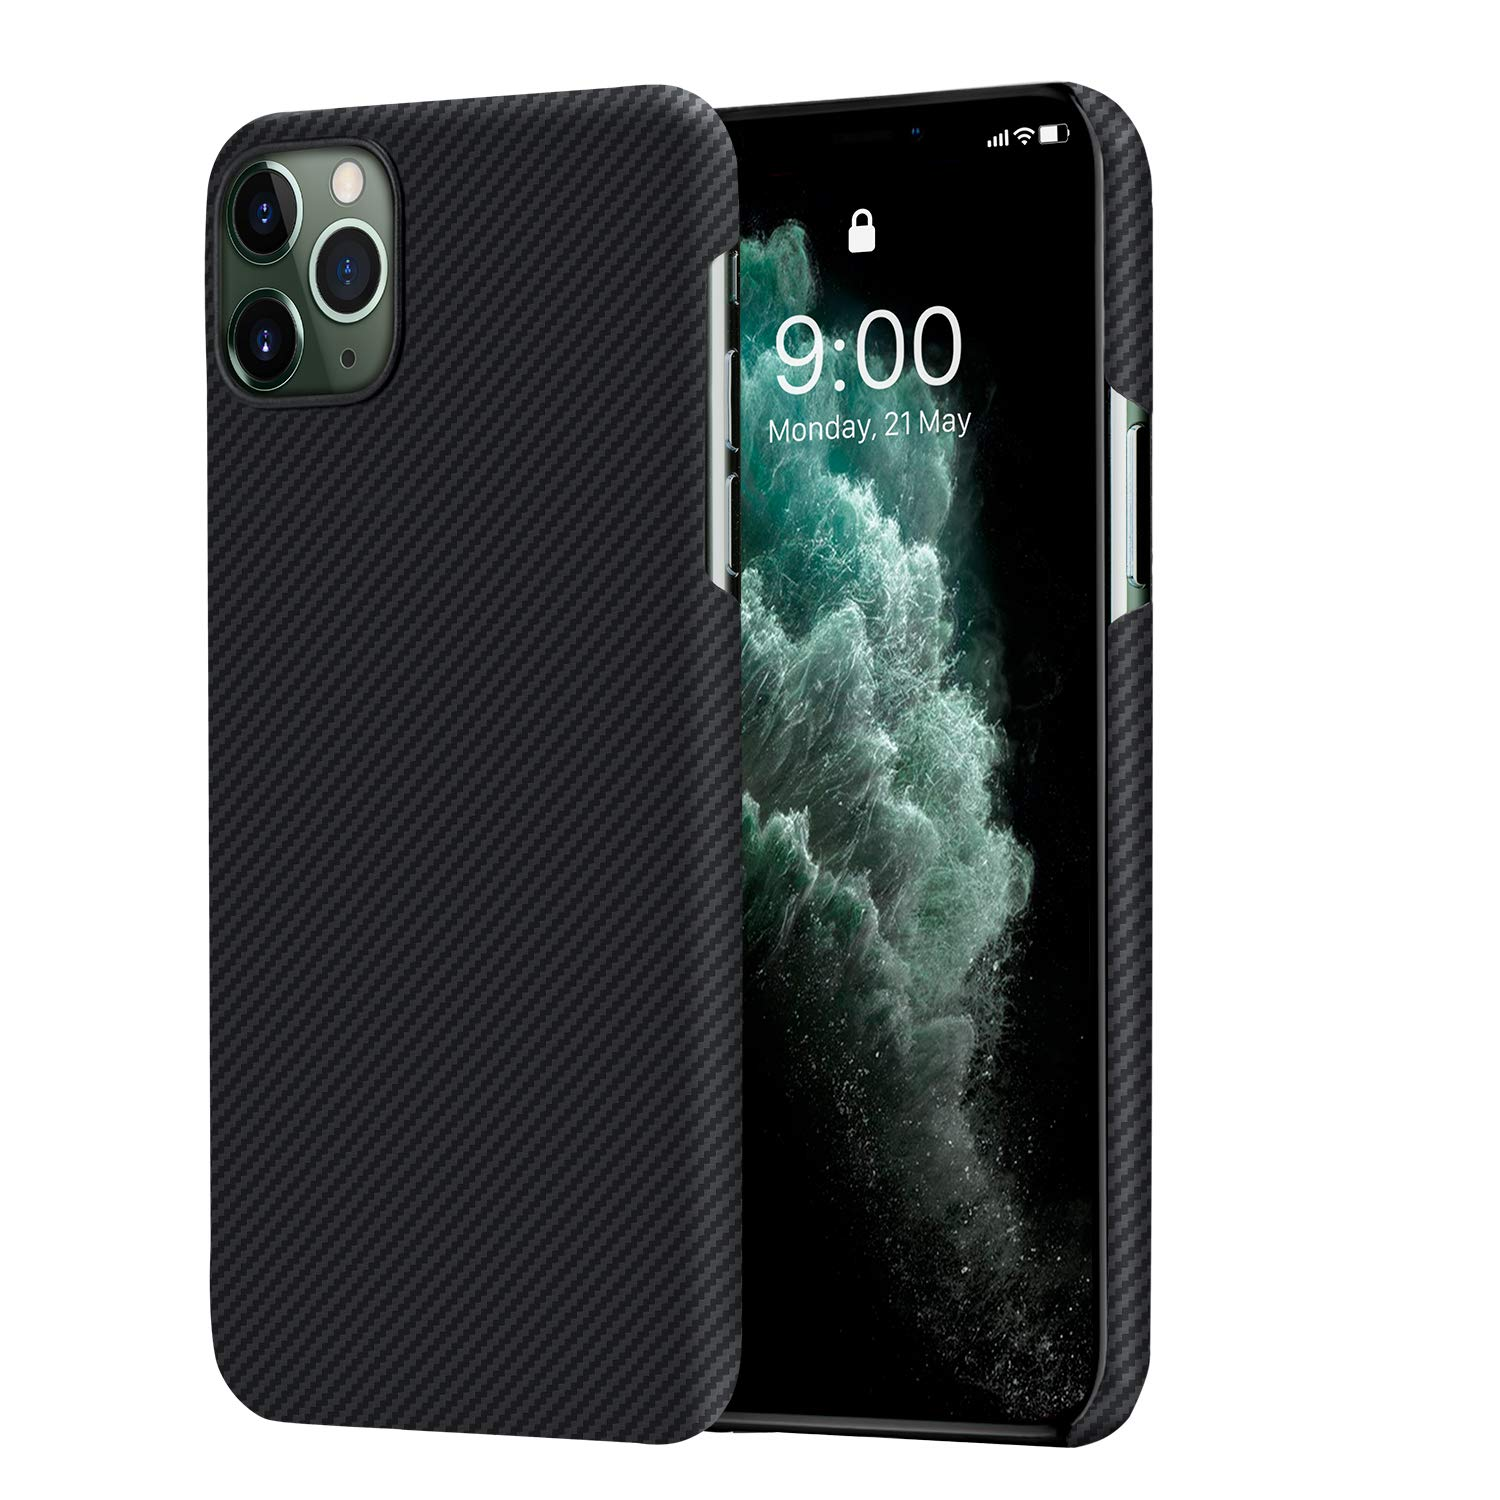 PITAKA Ultra Slim Case Compatible with iPhone 11 Pro 5.8'' Air Case Selected 600D Premium Aramid Fiber Ultra Thin Ultra Light Skin Carbon Style Minimalist Simple Design Cover